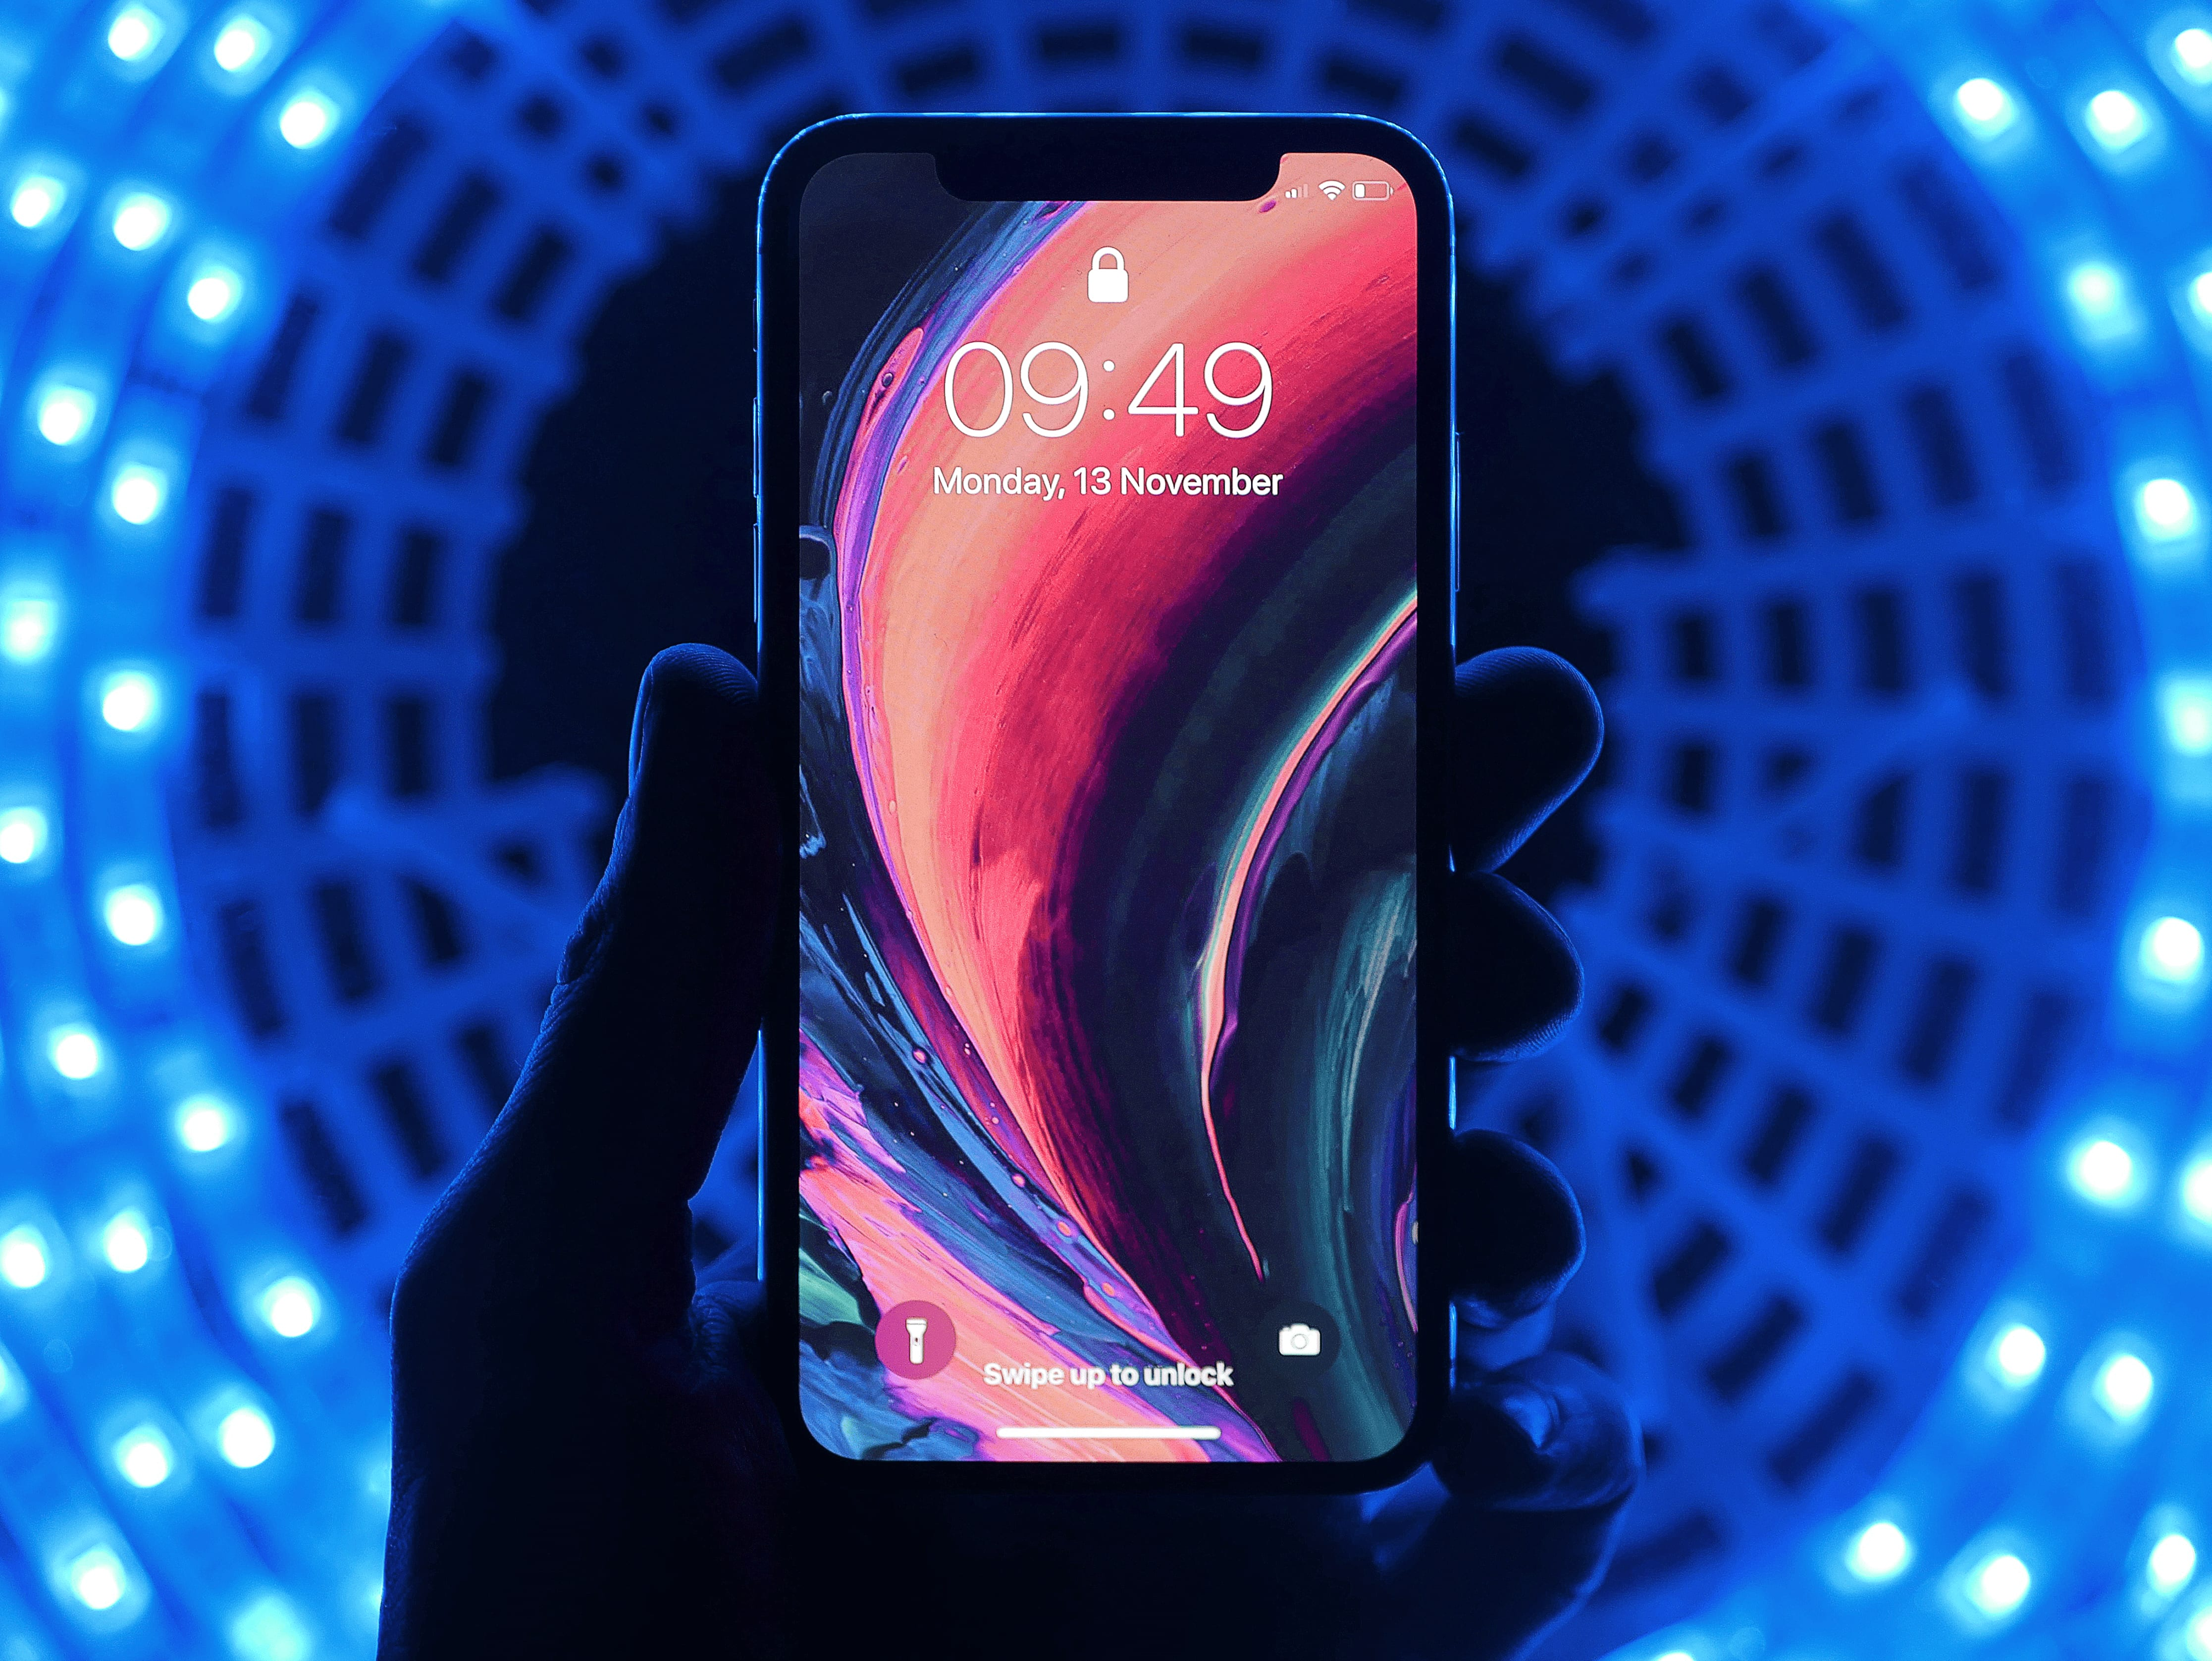 iPhone XS: How to Troubleshoot the Reported LTE Connectivity Issues